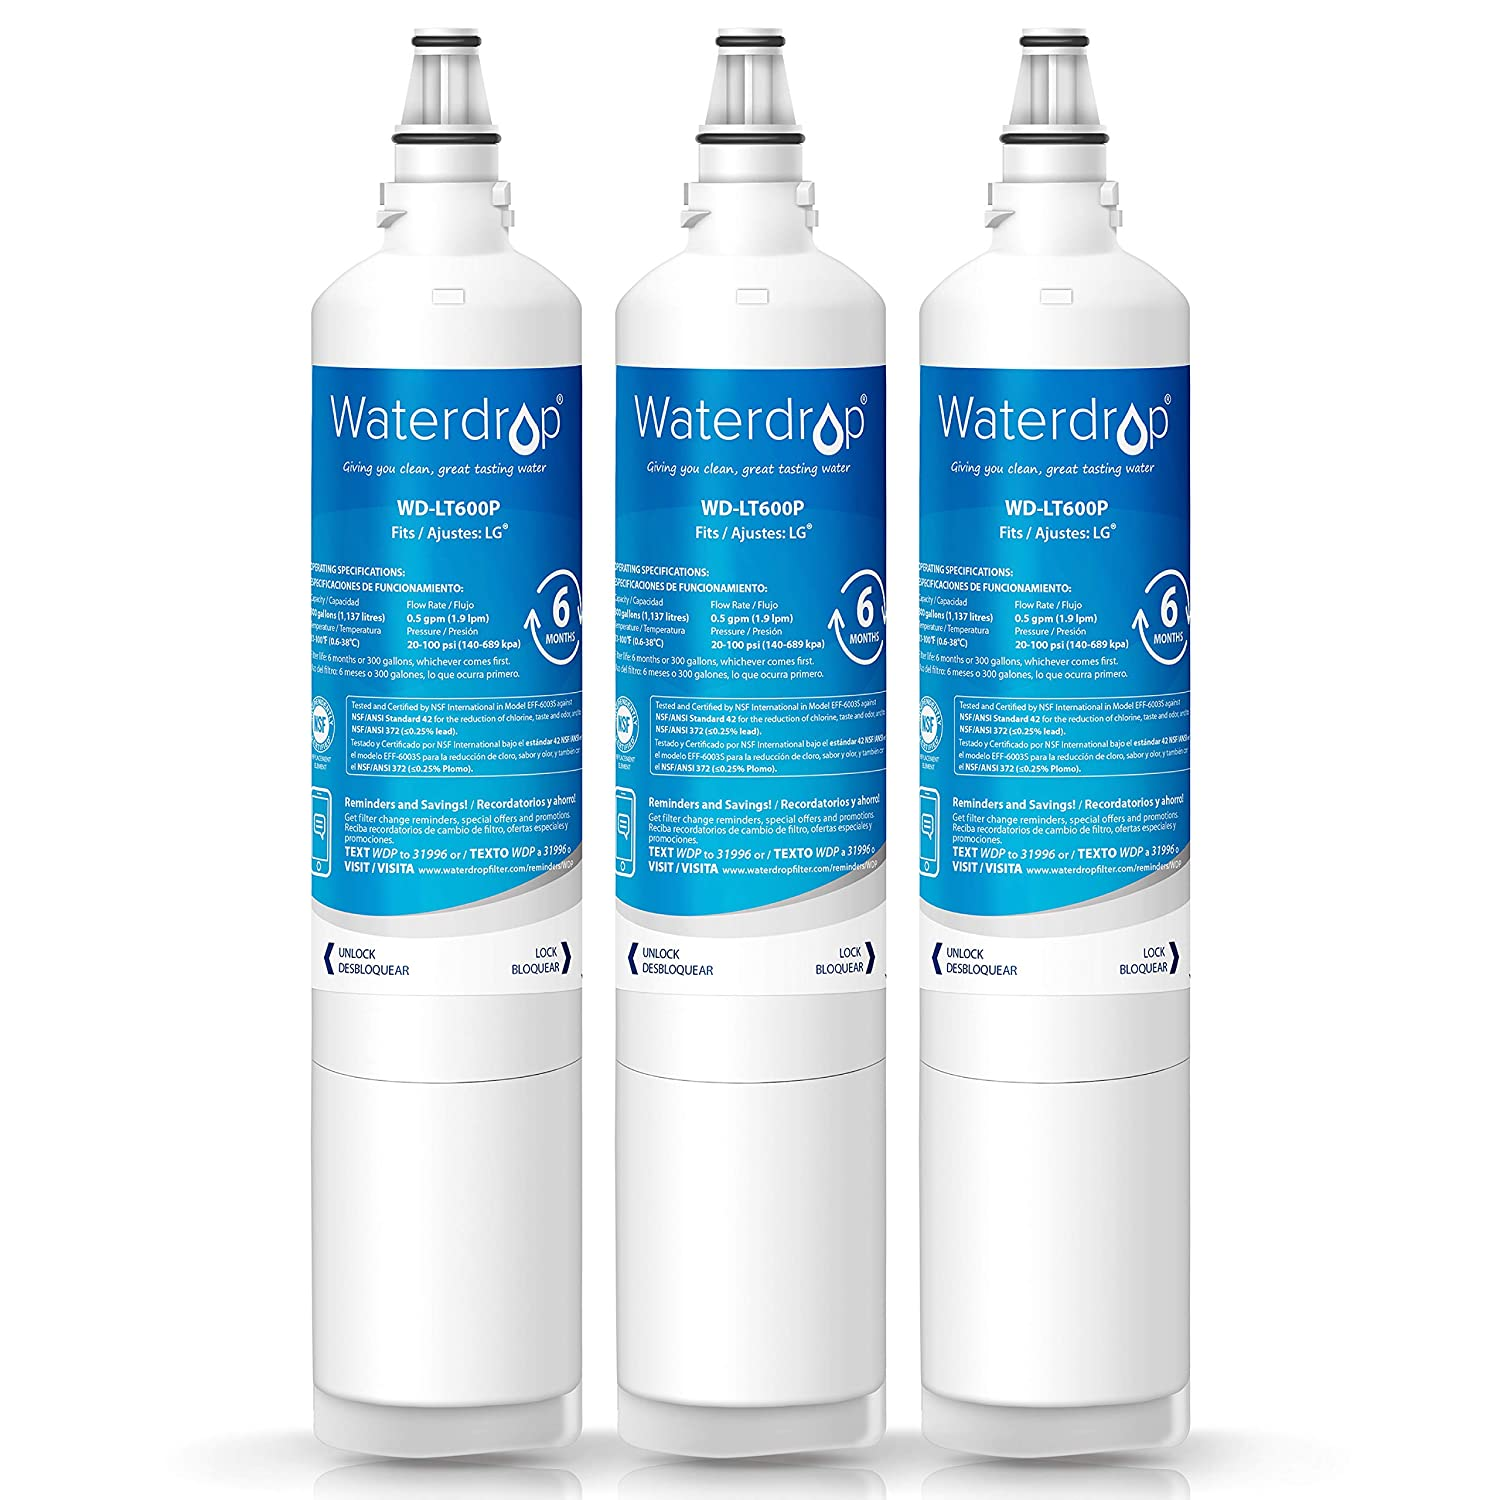 Waterdrop Refrigerator Water Filter, Compatible with LG LT600P, 5231JA2006A, 5231JA2006B, Kenmore 46-9990, 9990, 469990, Standard, Pack of 3